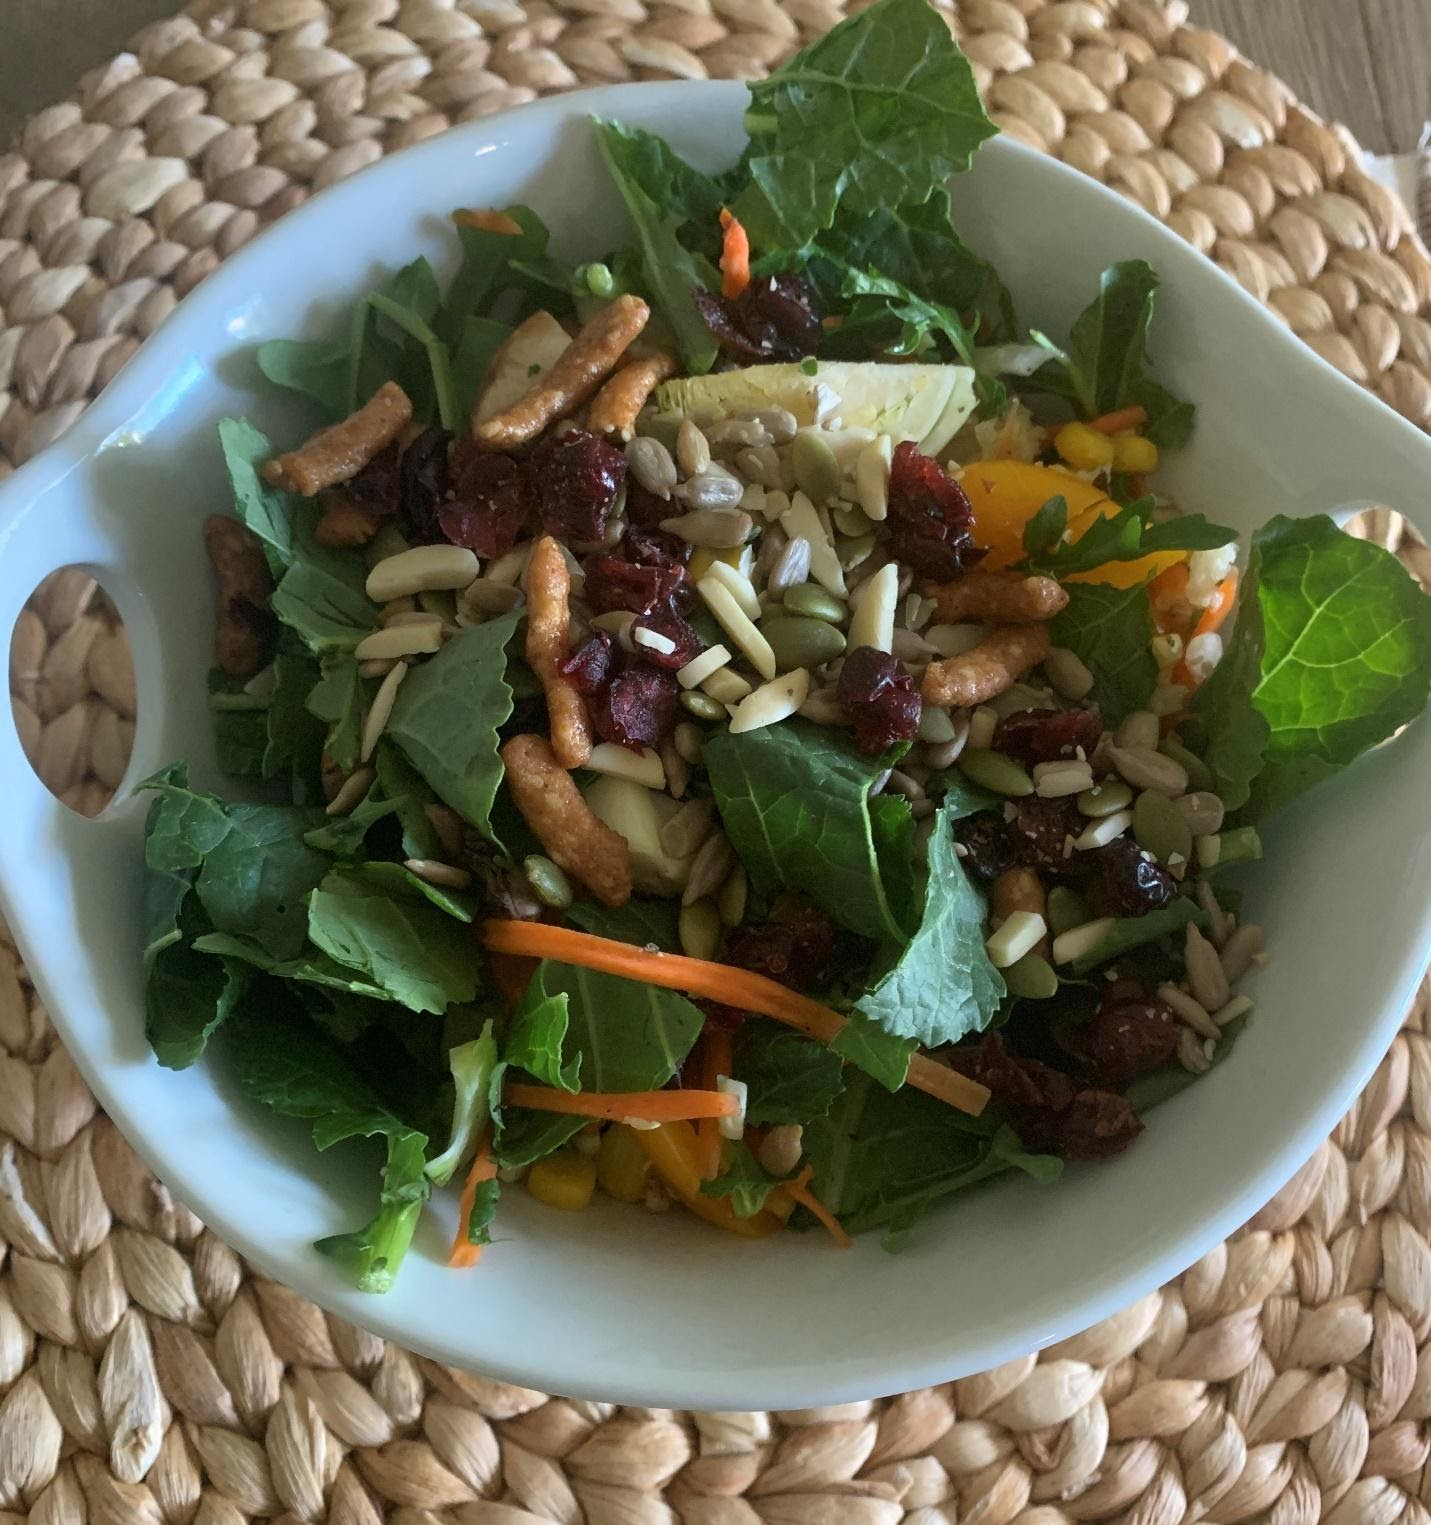 A bowl of salad on a plateDescription automatically generated